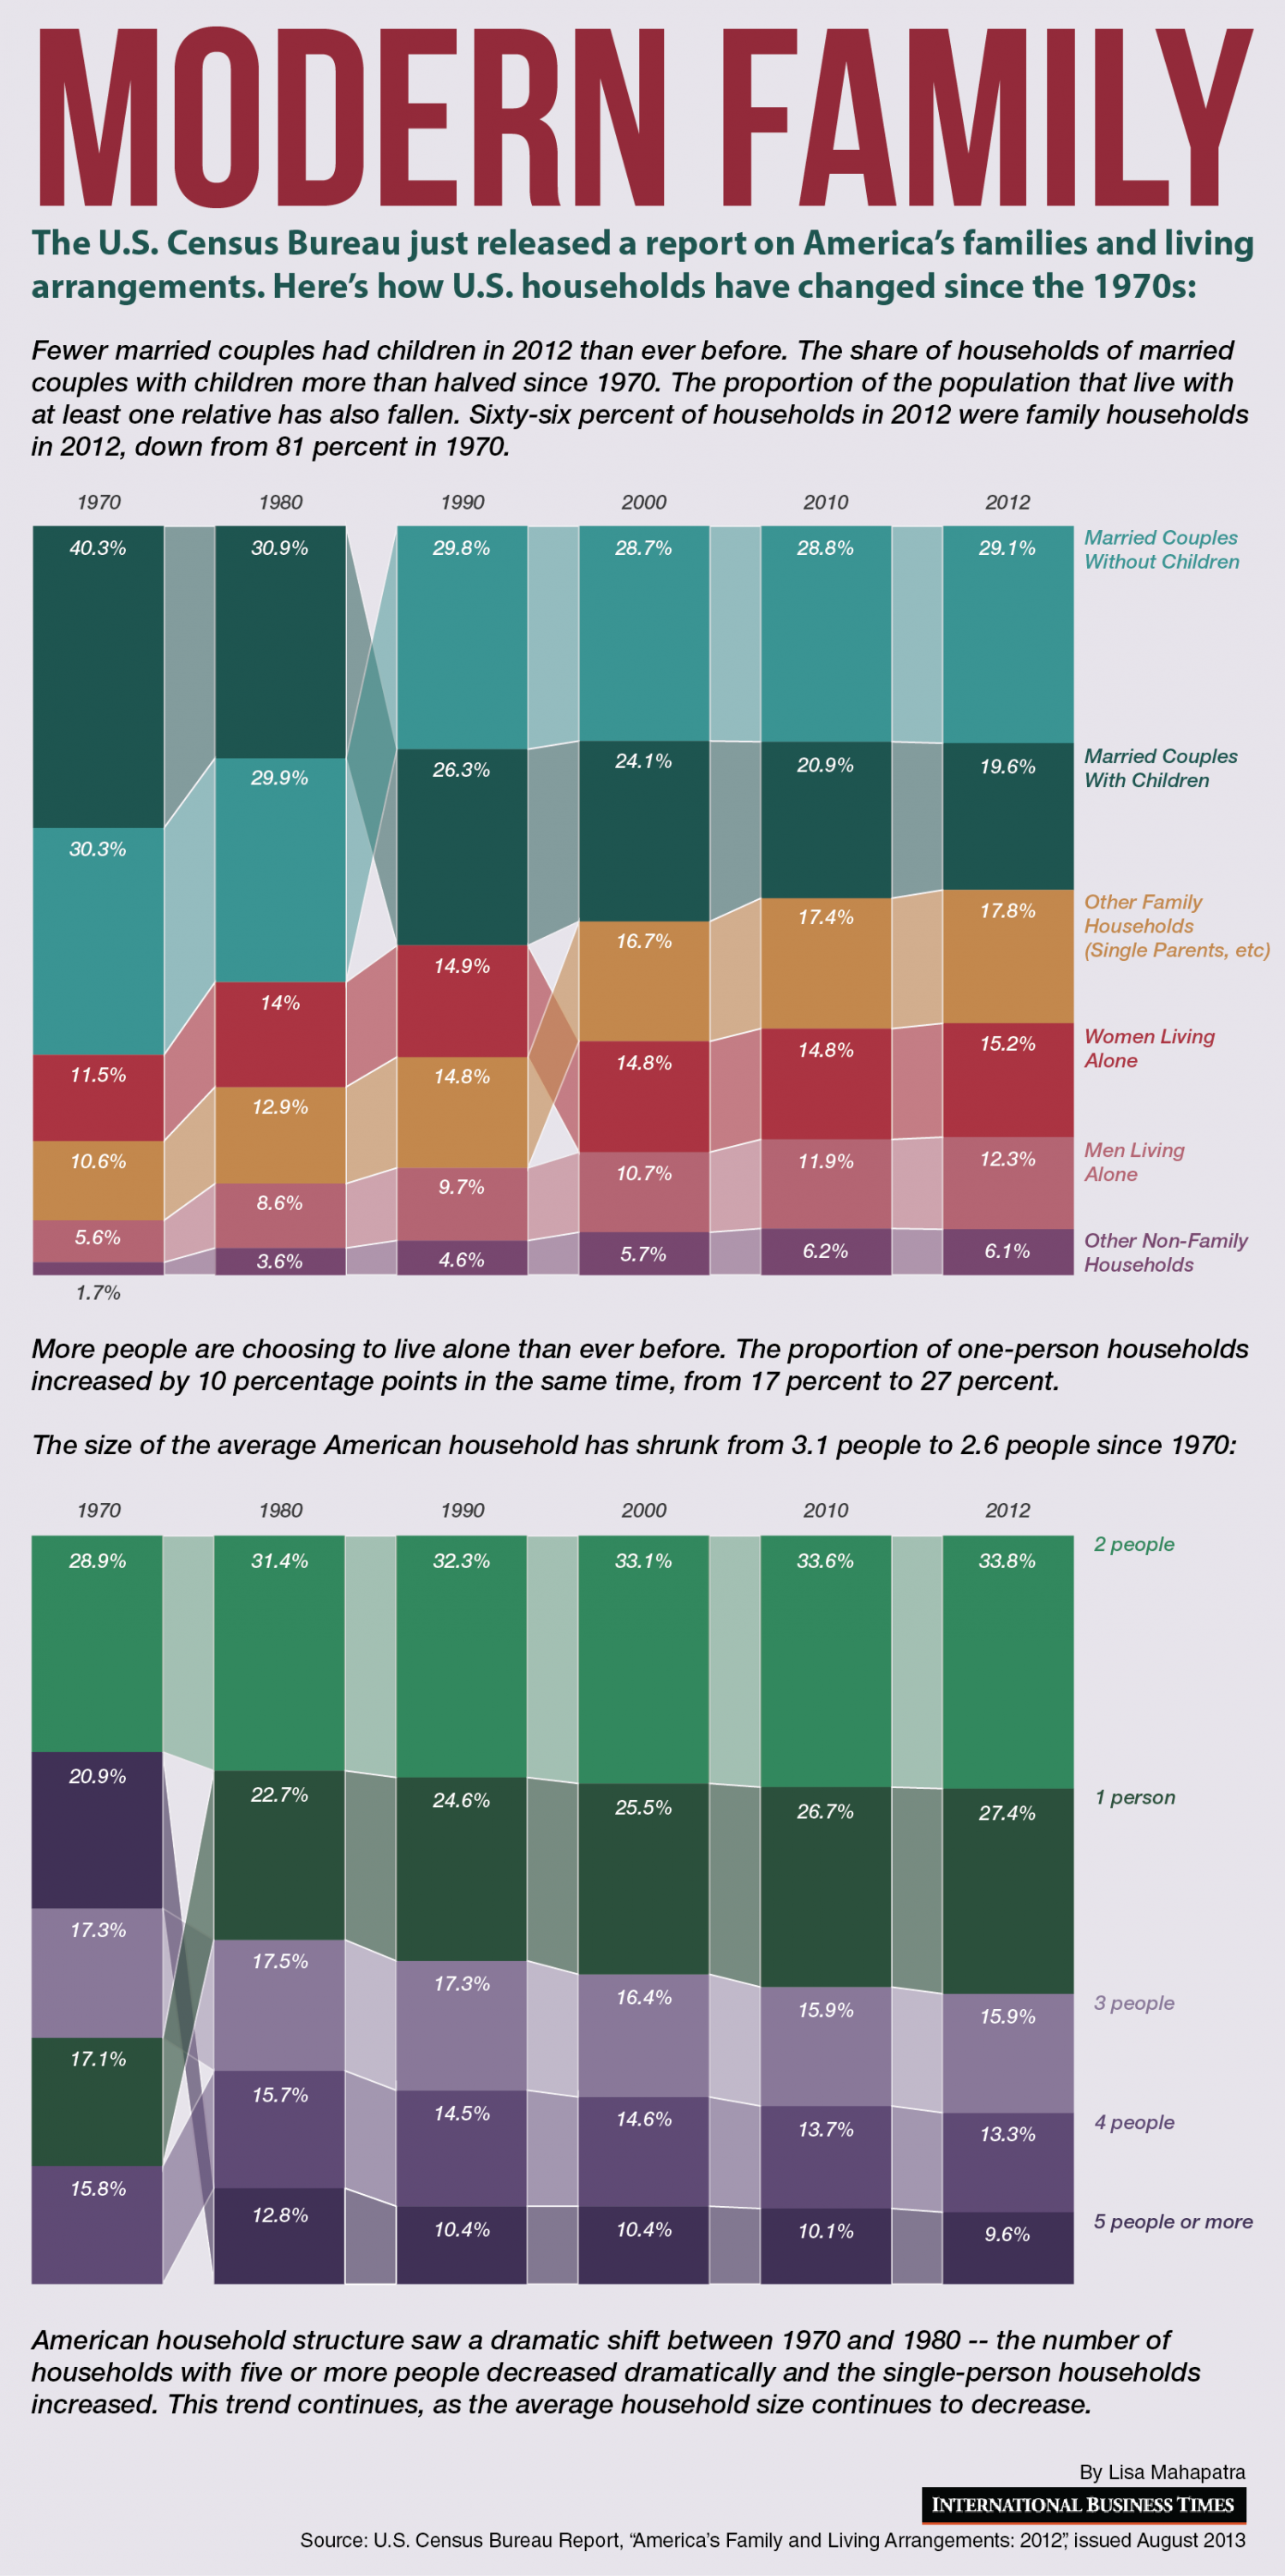 Modern Family: how U.S households have changed since the 1970's  Infographic